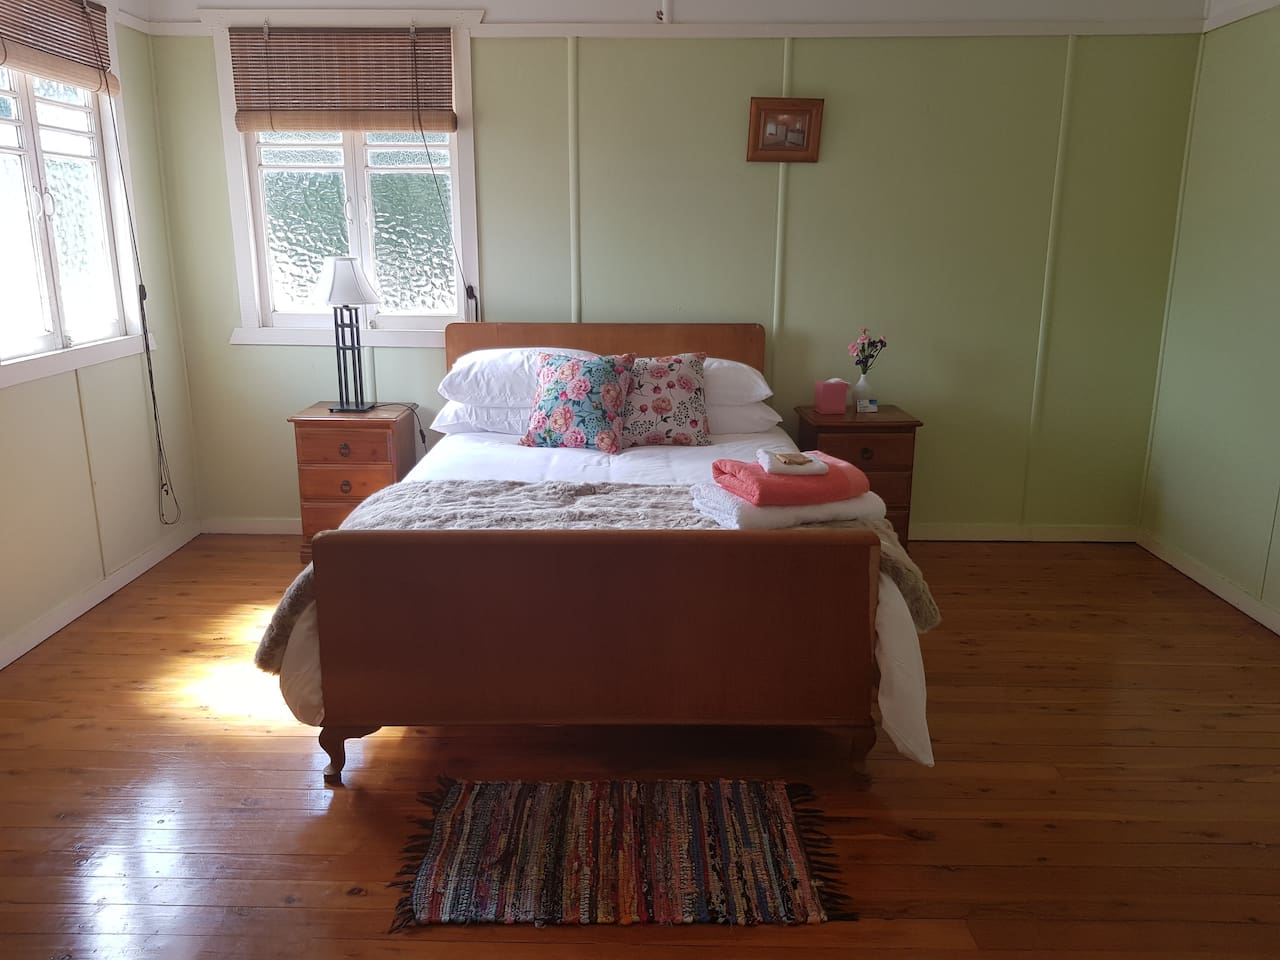 Specious room with a super comfy bed & beautiful crisp clean linens